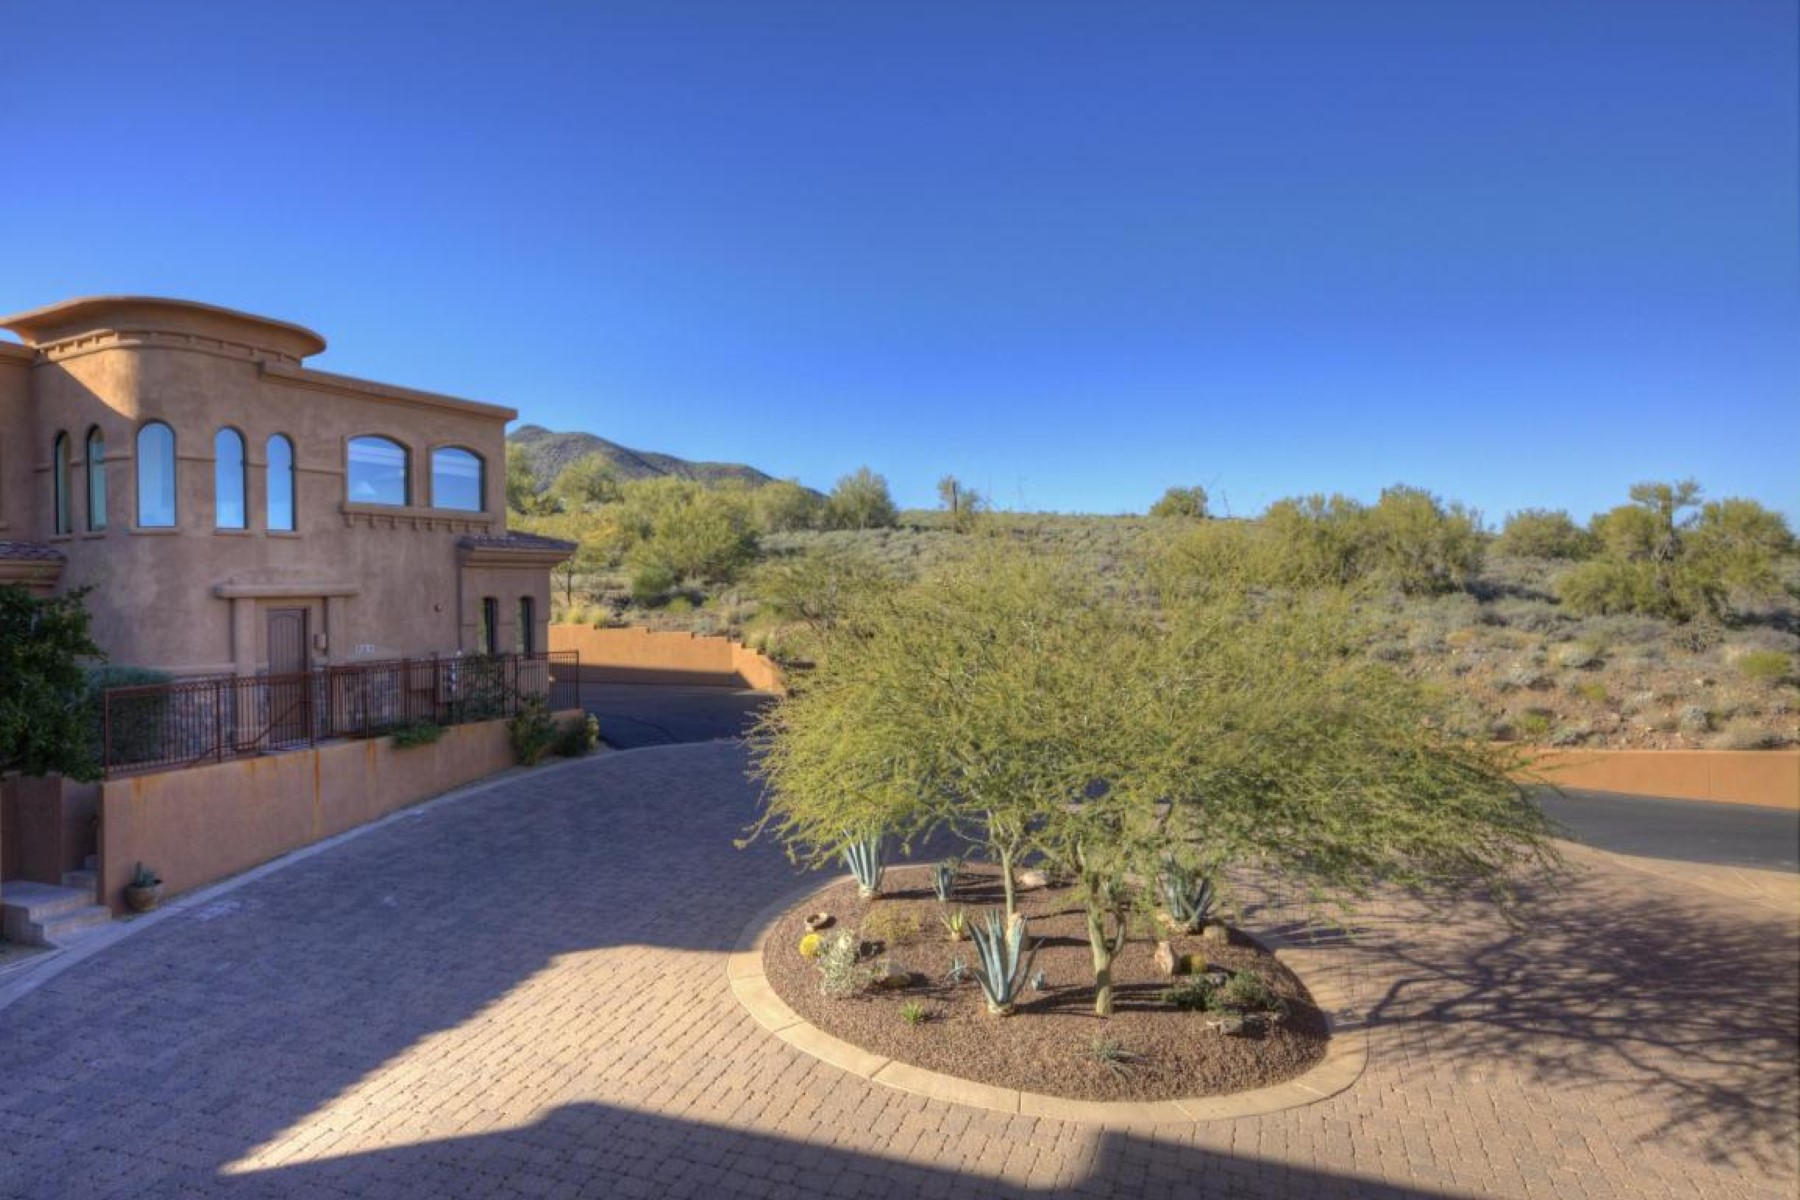 Townhouse for Sale at Penthouse style living with extraordinary,panoramic views. 7199 E RIDGEVIEW PL 221 Carefree, Arizona 85377 United States